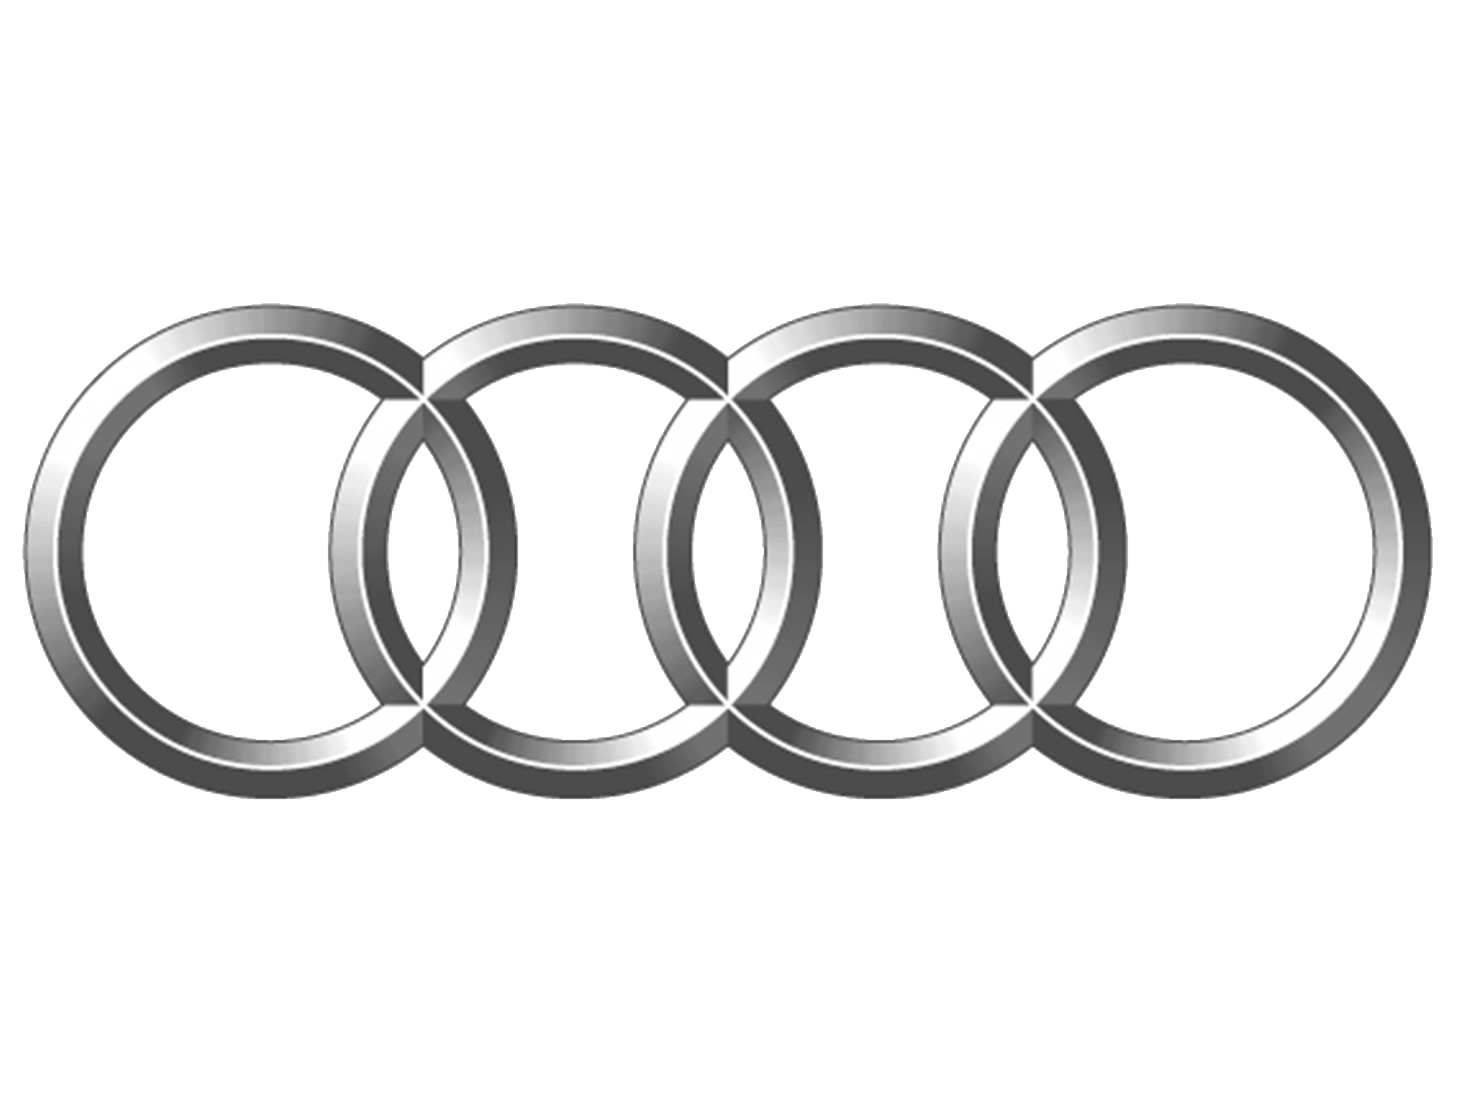 Audi drawing black and white. Logo transparent png stickpng